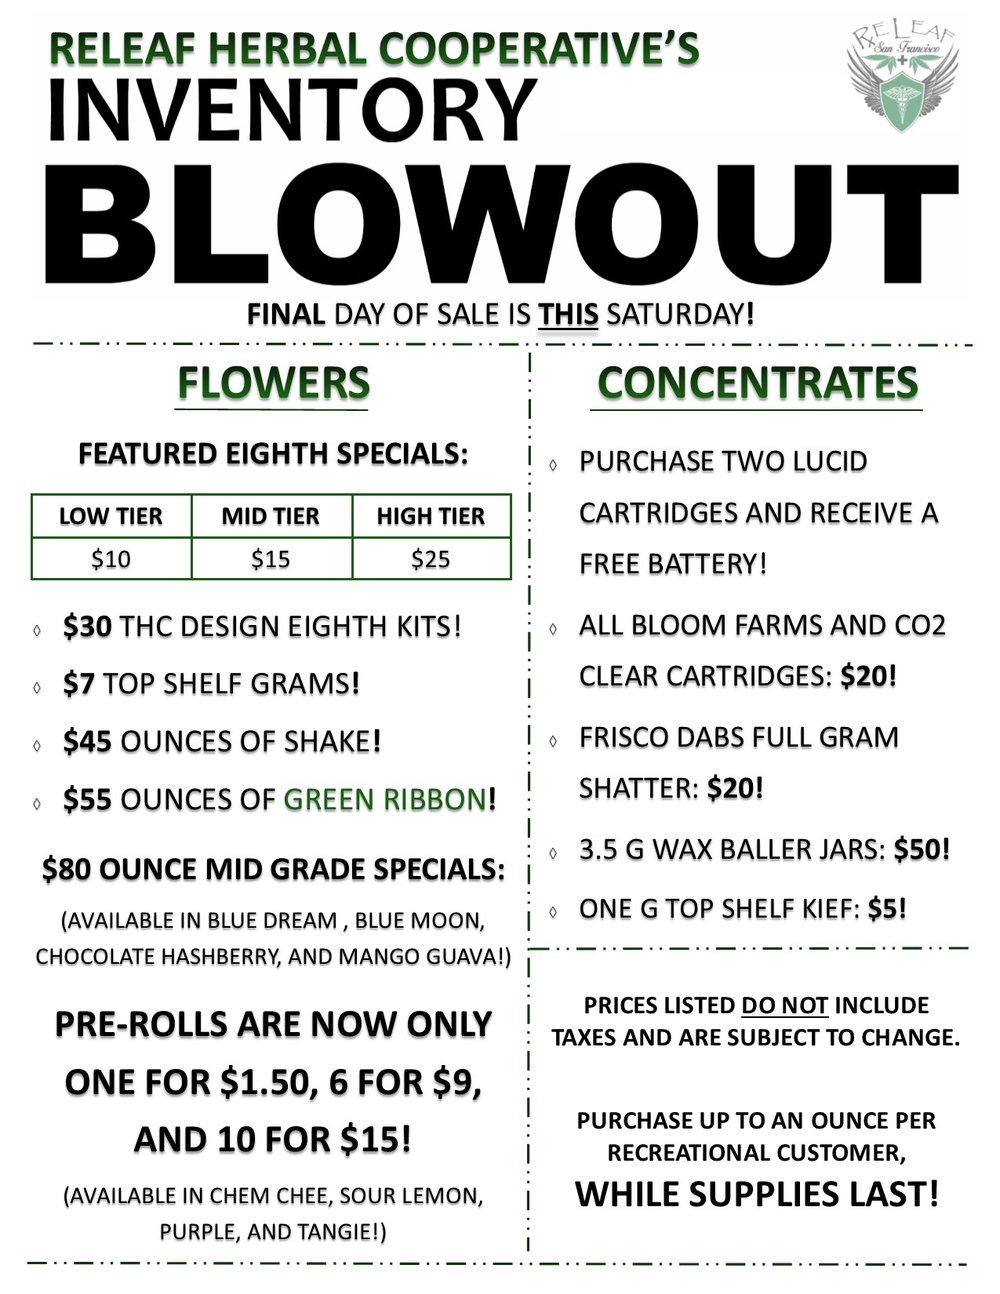 BLOWOUT SALE.jpg